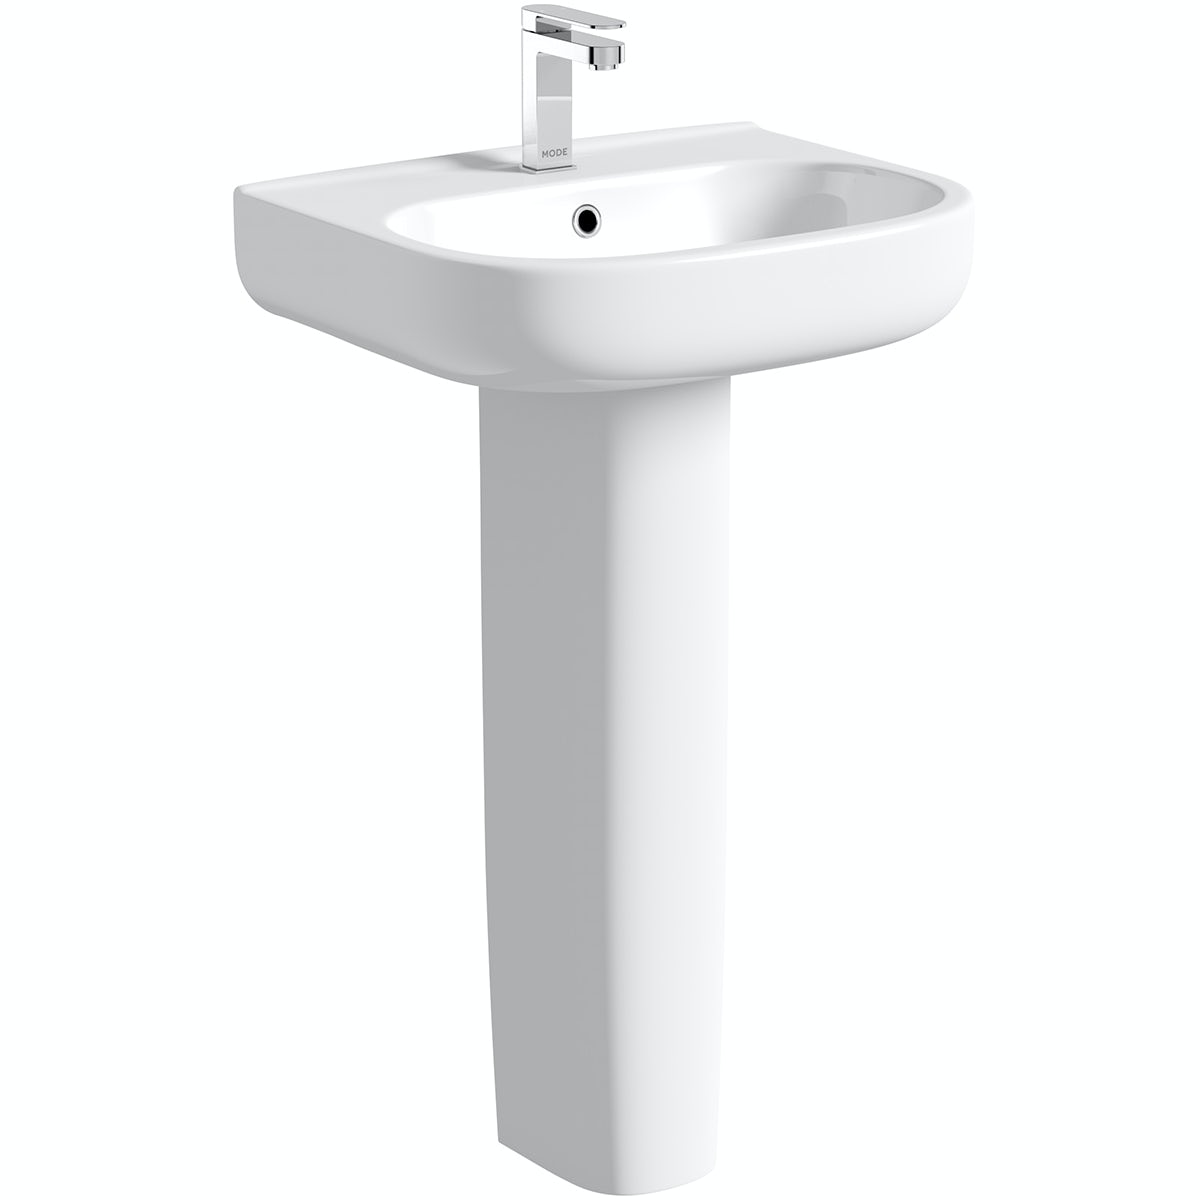 Mode Burton full pedestal basin 550mm with waste